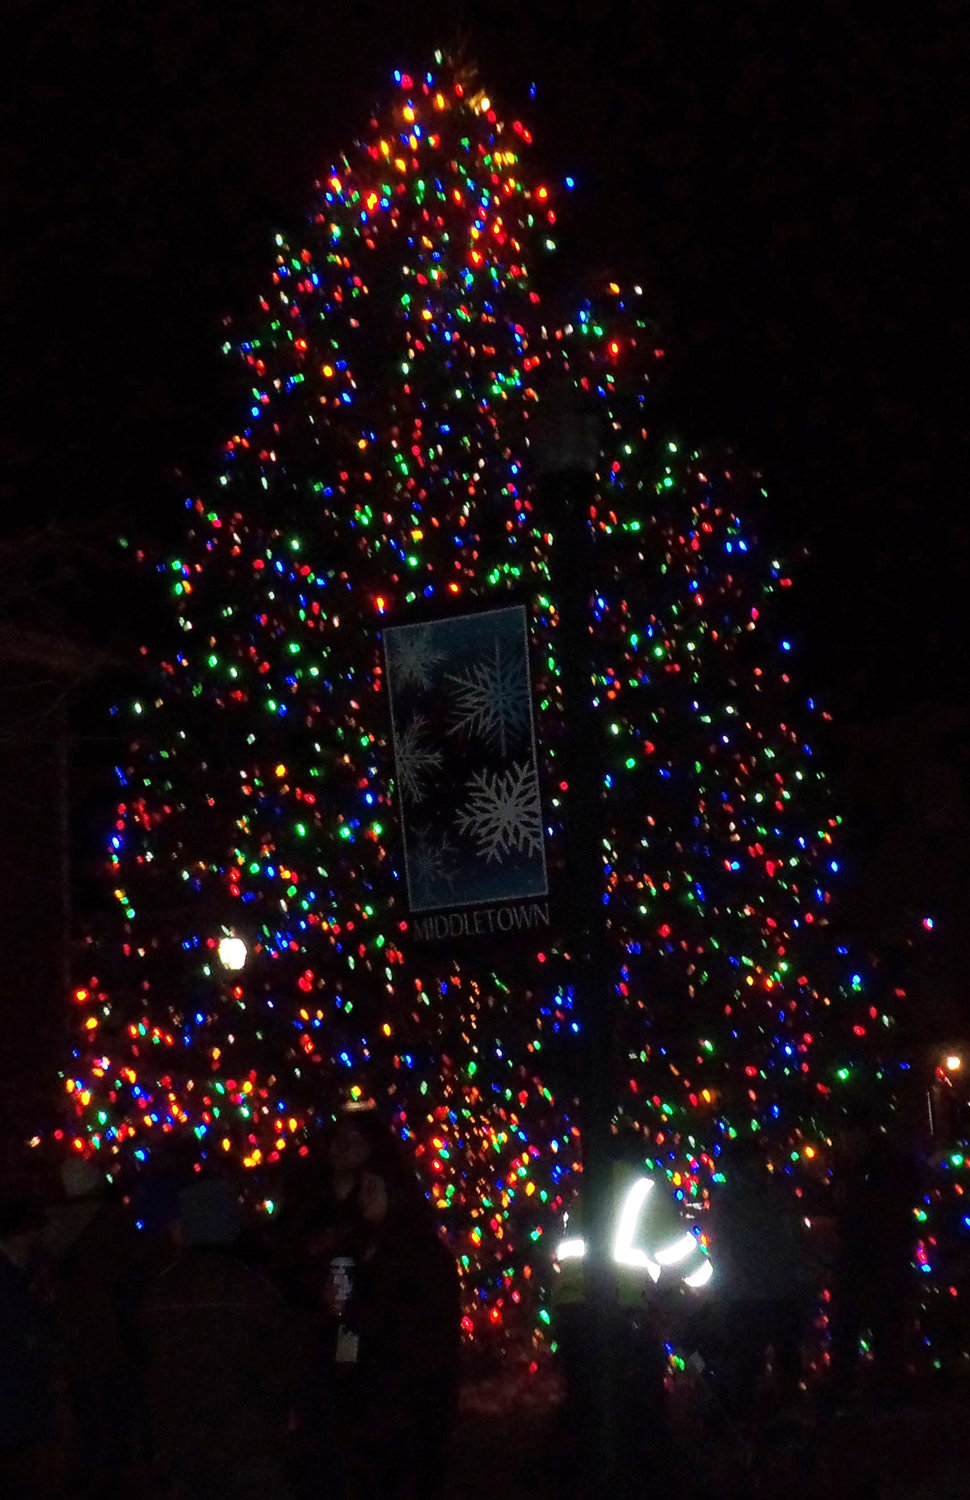 This year's Middletown borough Christmas tree was donated by Dianne Billy of Lower Swatara Township. The 37-foot tree at the tree-lighting ceremony Saturday, Nov. 30, was procured from her front yard..